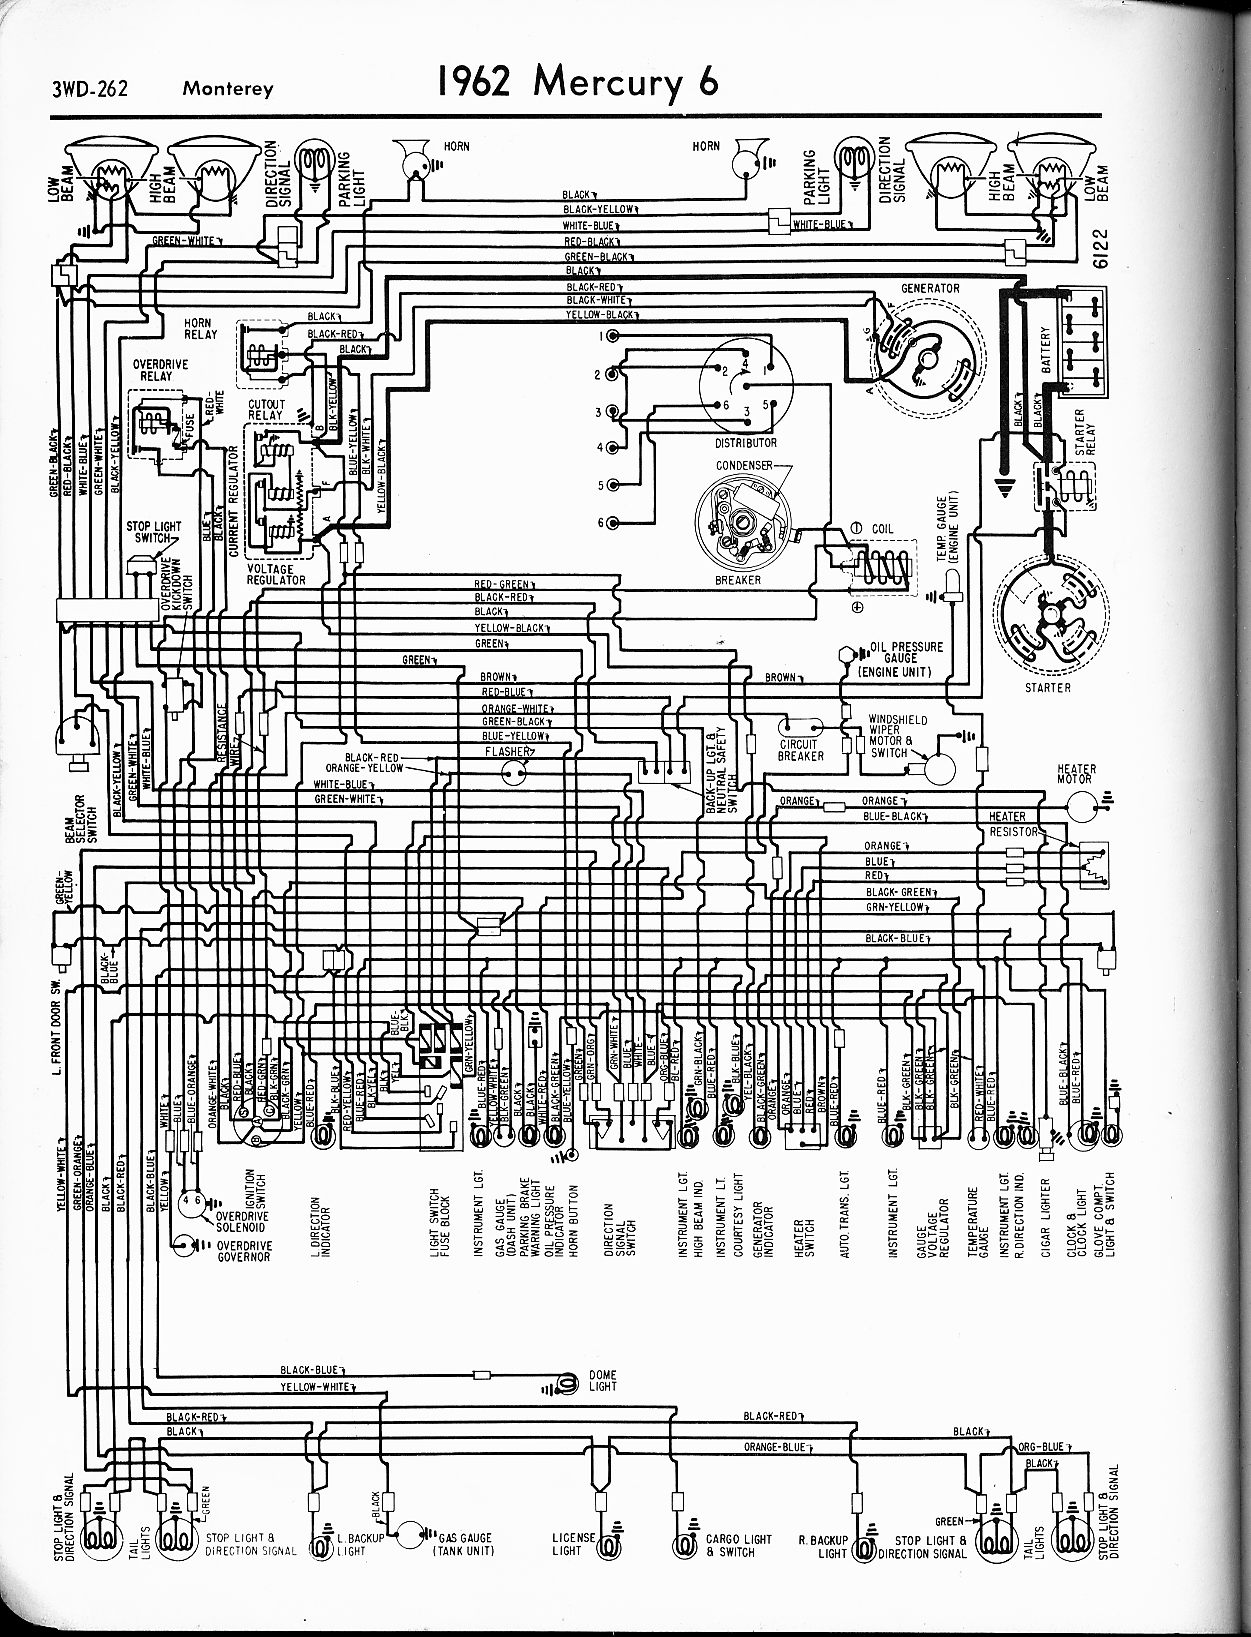 Ford Thunderbird Starter Solenoid Diagram House Wiring 1965 Mercury Relay Enthusiast Diagrams U2022 Rh Rasalibre Co 8n 2001 F 250